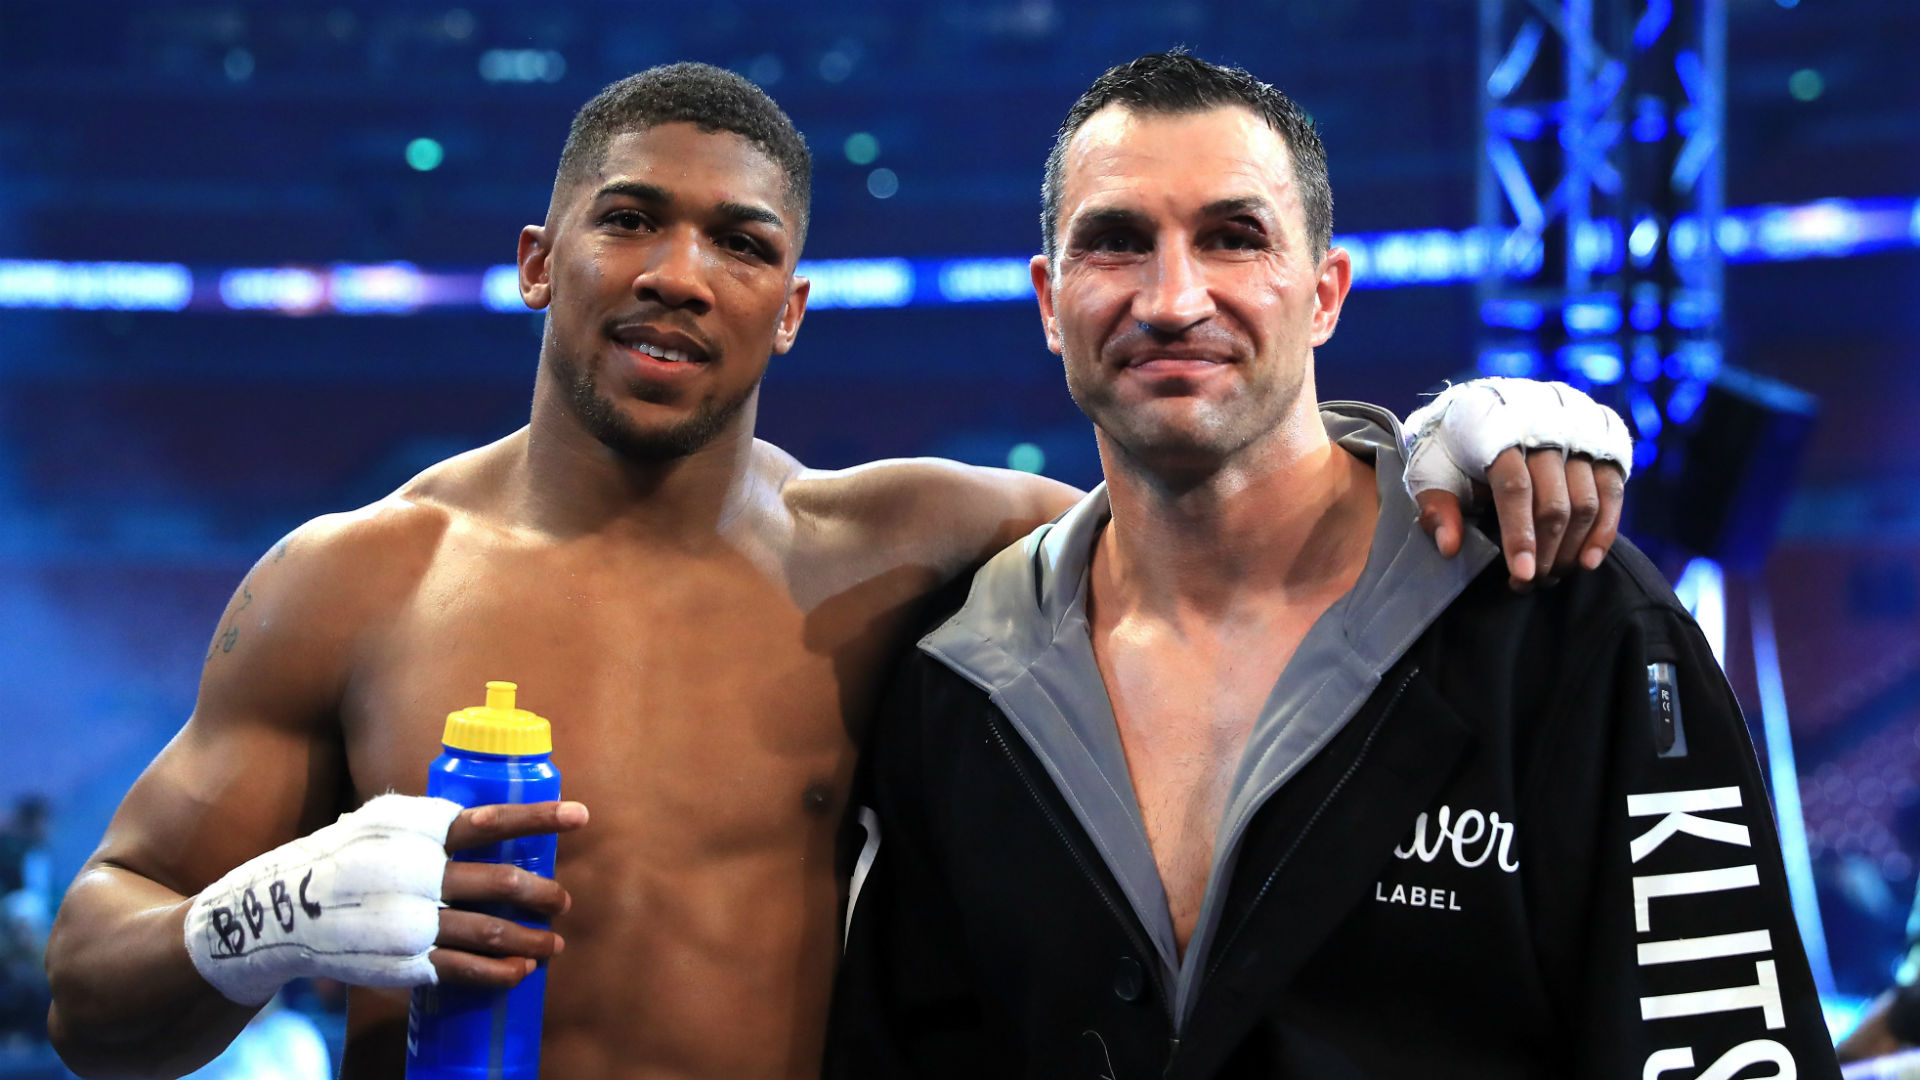 Ruiz v Joshua II: AJ calls on Klitschko advice for defining rematch